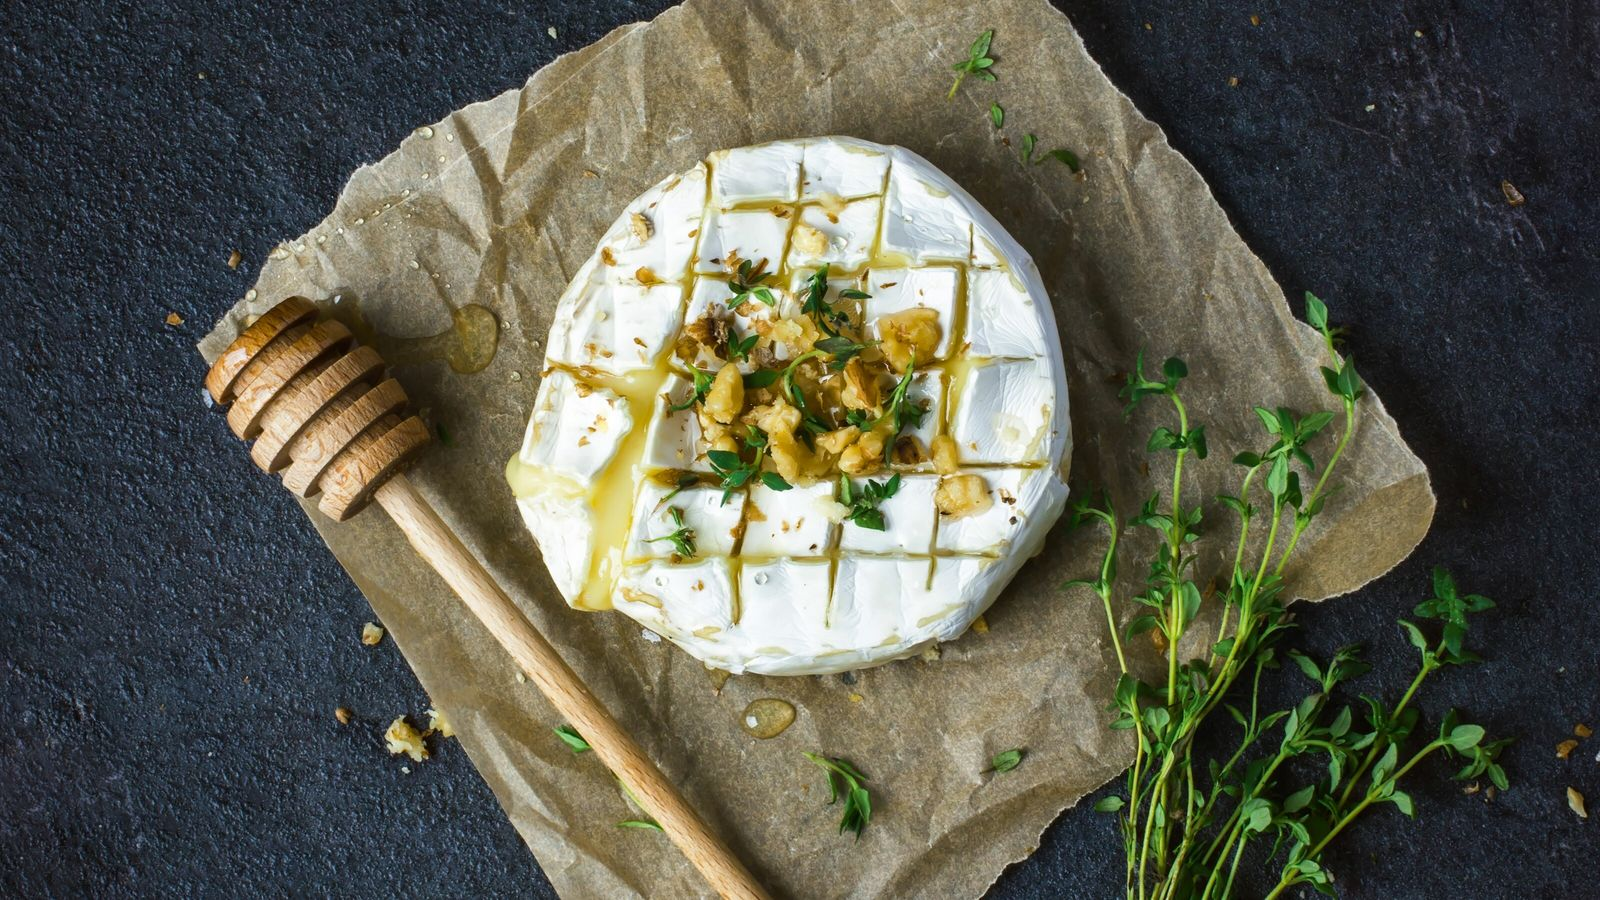 The past three decades have seen a revival in the UK's cheesemaking scene as part of ...